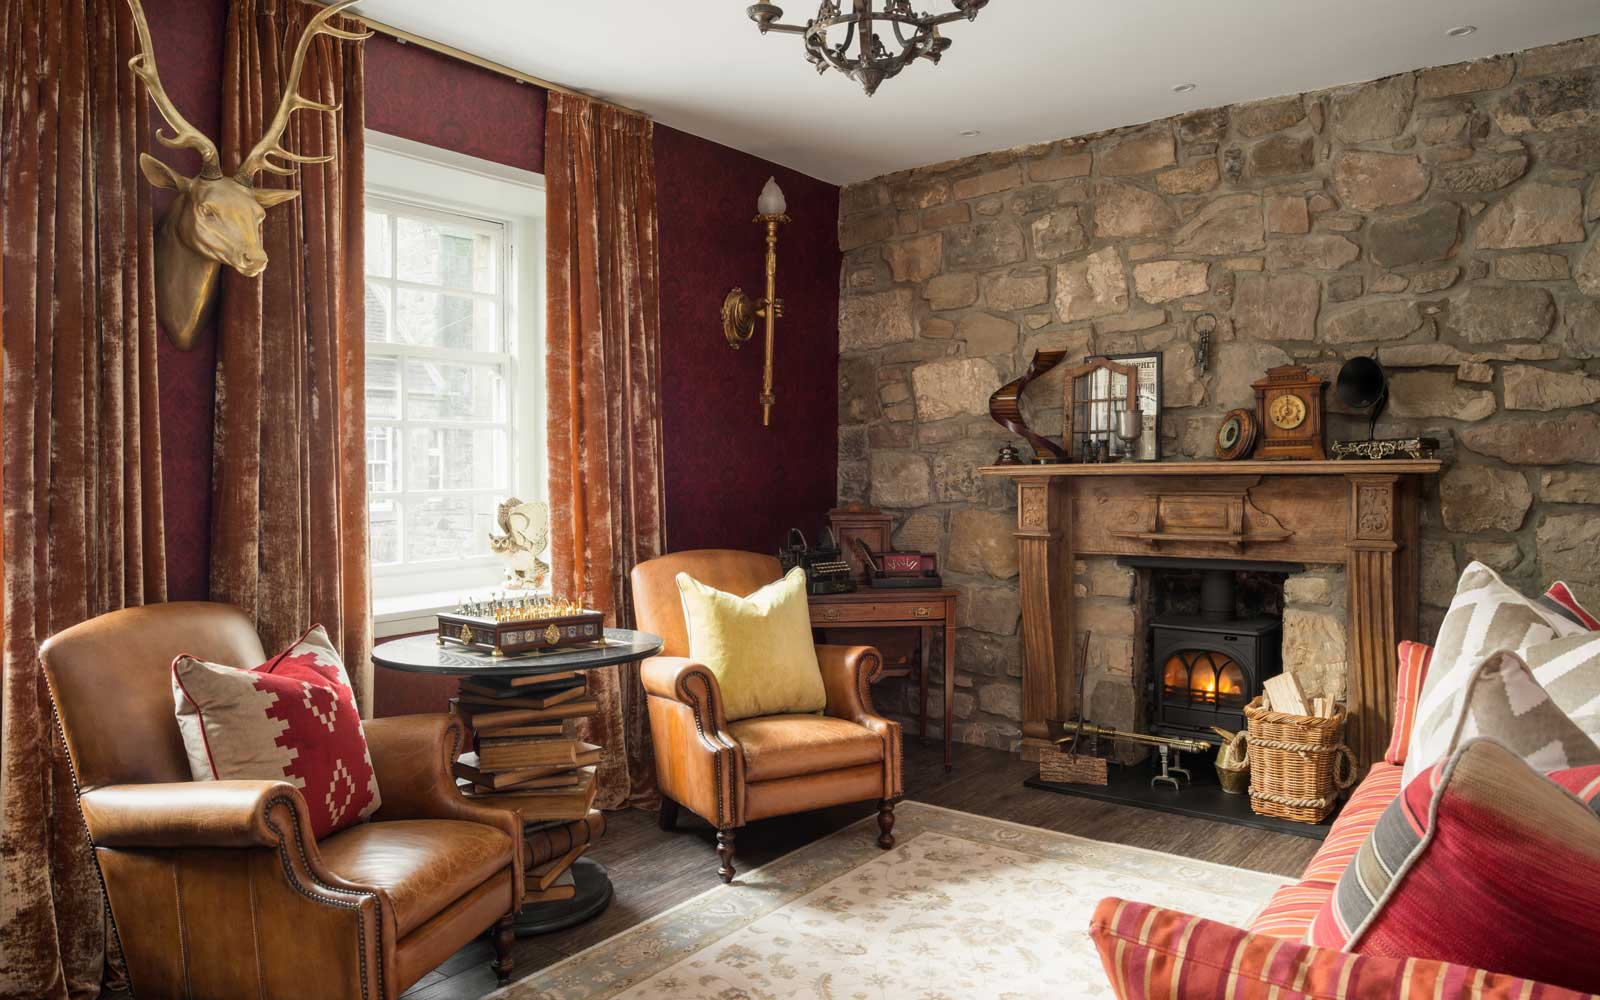 The living room has been designed to look like the Gryffindor common room. See Centre Press story CPPOTTER; Harry Potter fans now have the chance to spend a night at Hogwarts -- after a luxury apartment dedicated to the much-loved films opened to visitors. Situated in the Scottish Capital -- the birthplace of J.K Rowling's Harry Potter books -- the magical apartment is the brainchild of Hogwarts superfan Yue Gao. Canongate Luxury Apartment, which overlooks Edinburgh's Royal Mile, has a master bedroom with a Gryffindor dormitory theme. The flat, which is available to rent all year round, comes with a four-poster bed and has a ceiling which makes a beautiful illusion of floating candles. A second, smaller double room has been decked out to look like a carriage from the Hogwarts Express.